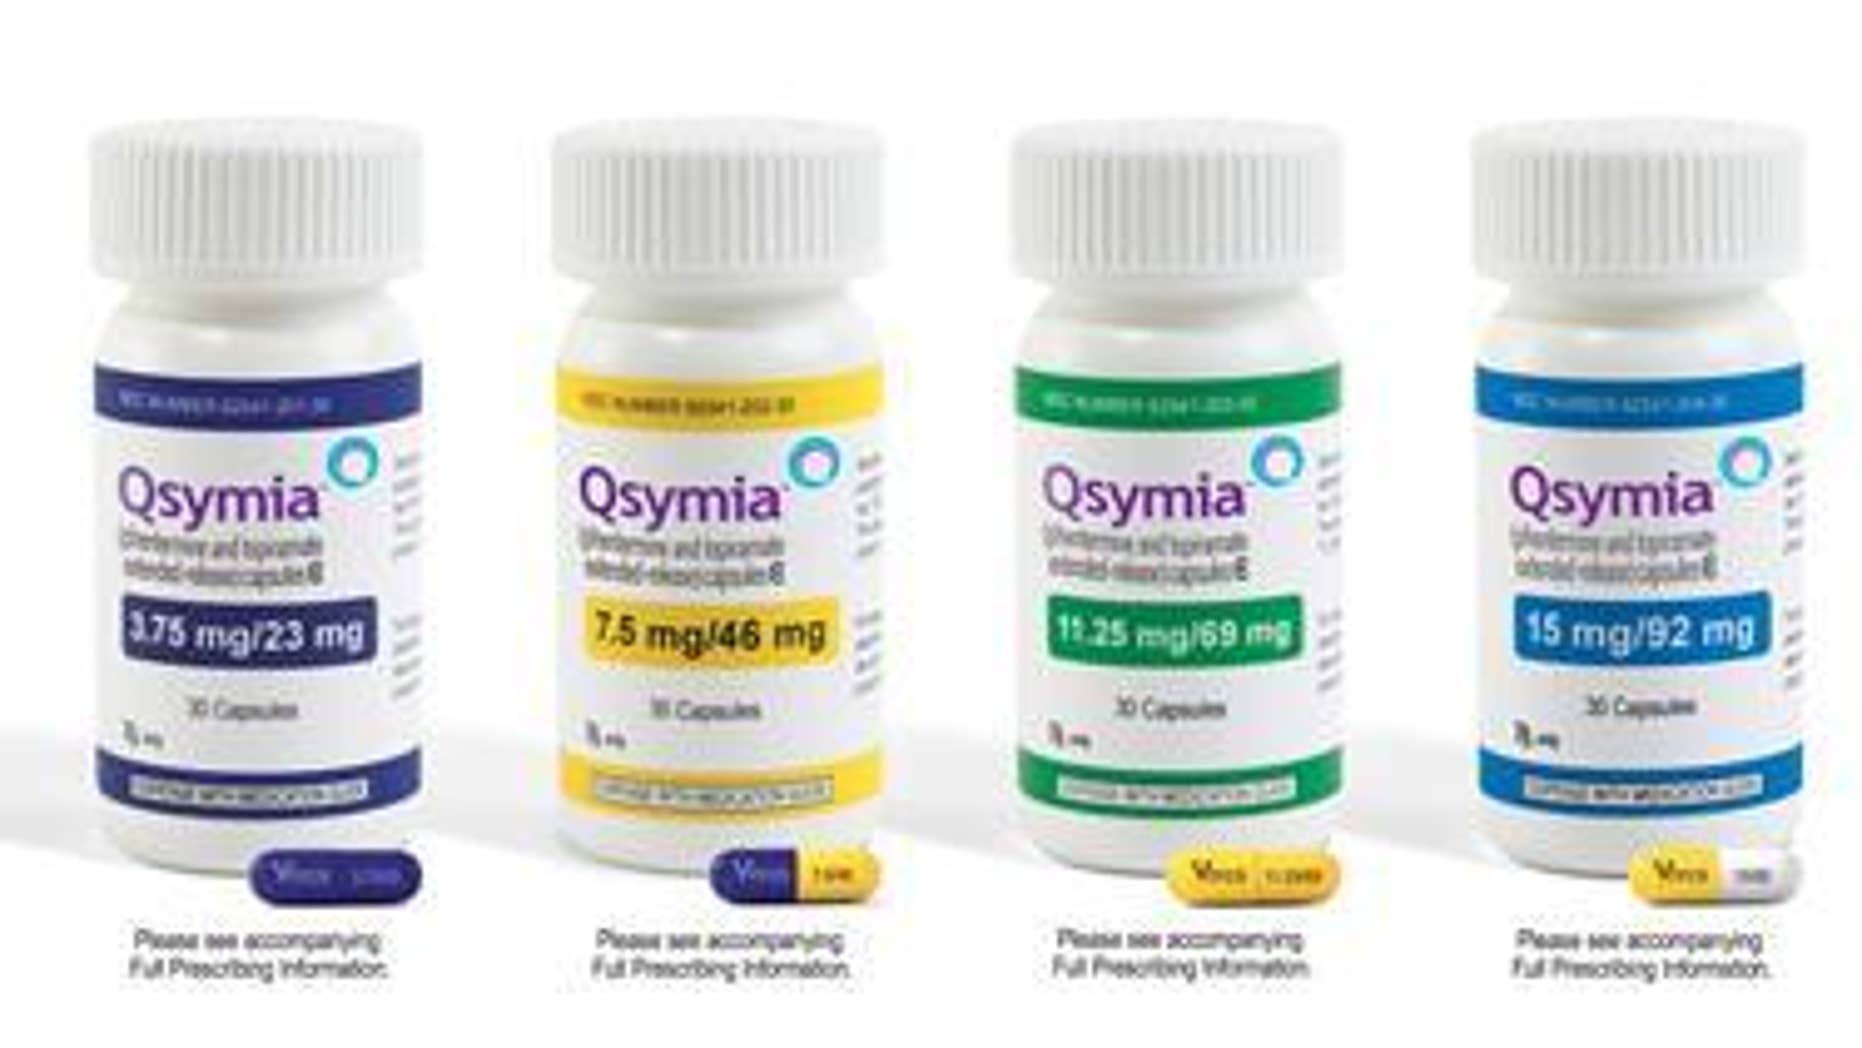 Bottles of pills of the weight-loss drug Qsymia produced by Vivus Inc are shown in this undated handout photo. REUTERS/Vivus/Handout